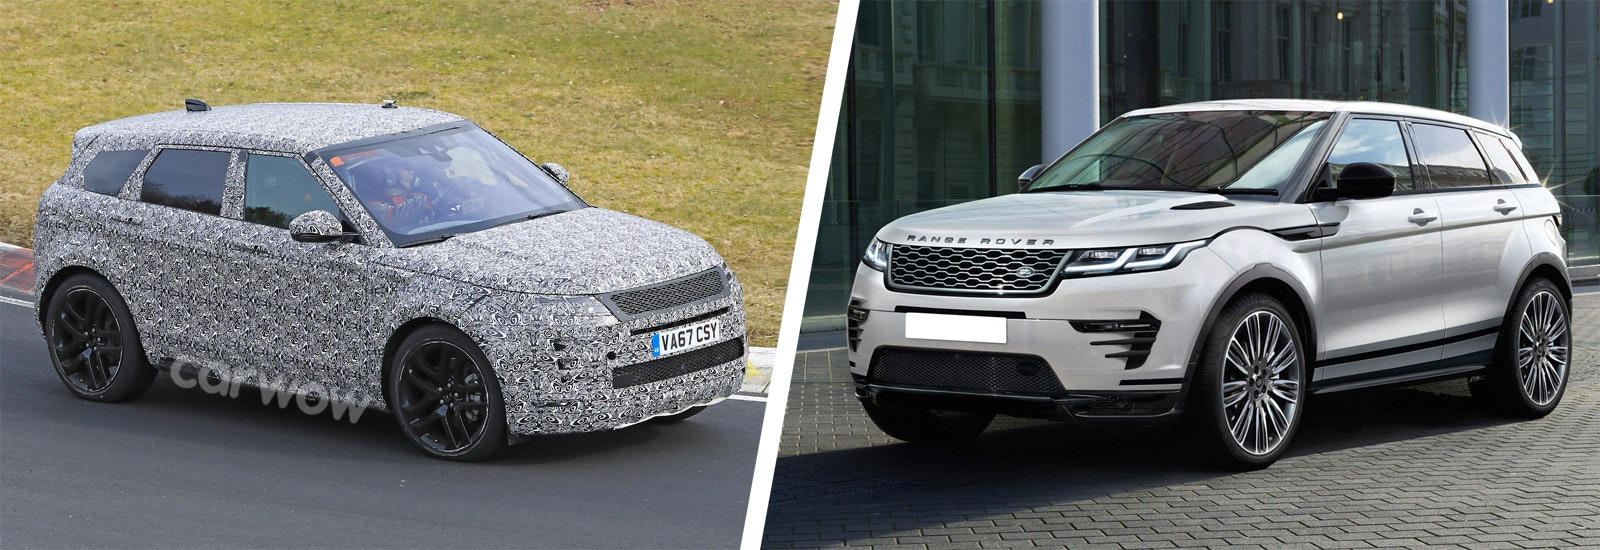 2018 7 Seater Cars >> 2019 Range Rover Evoque price, specs and release date | carwow